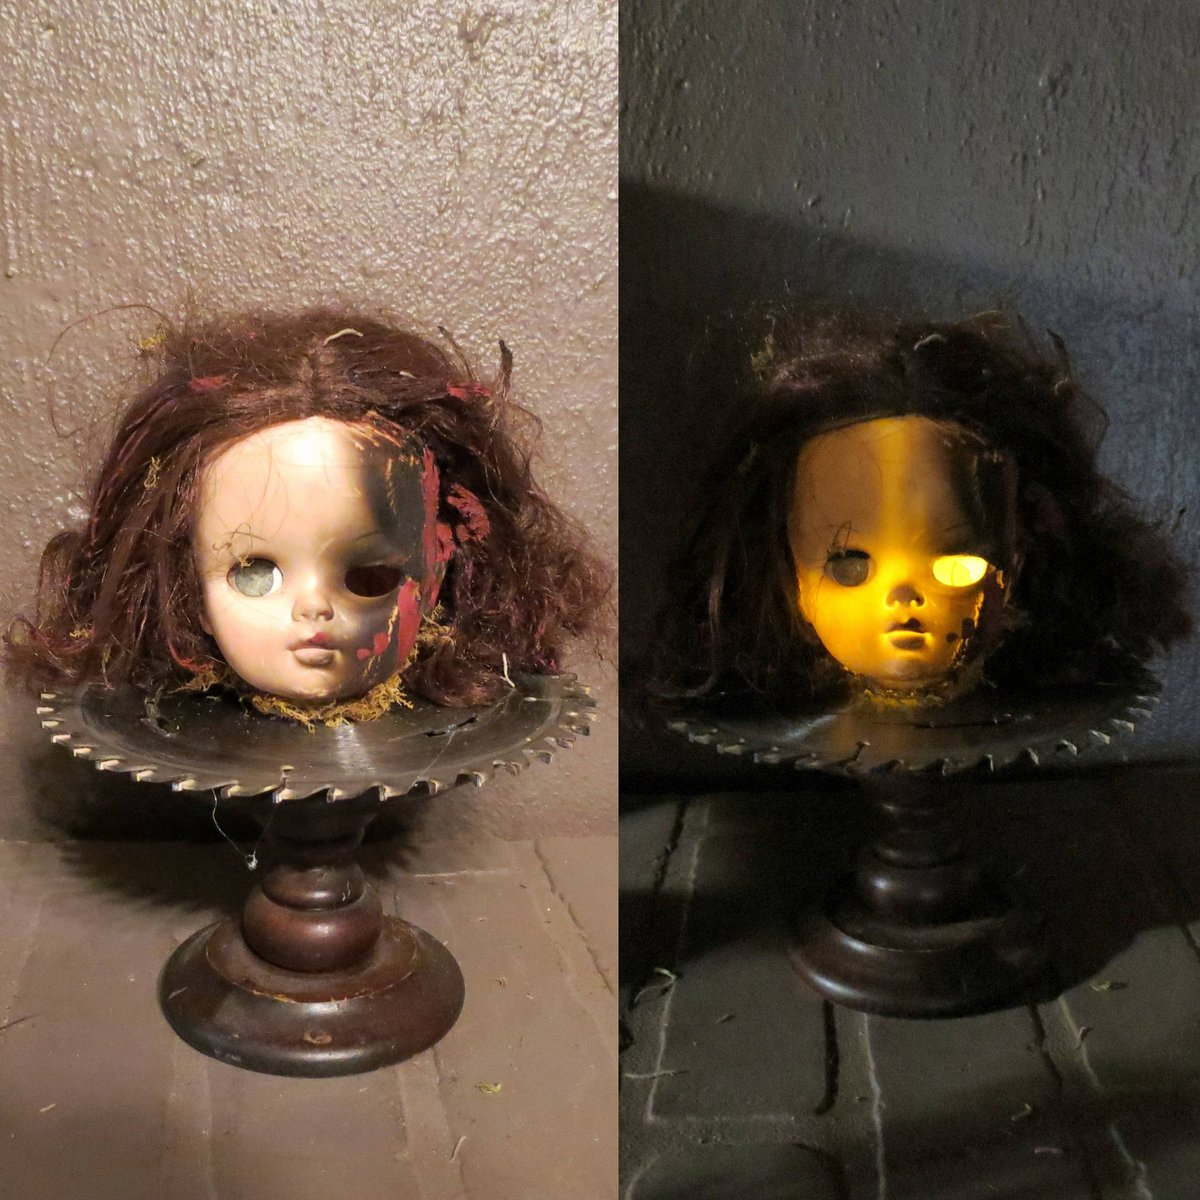 ... Creepy Doll Head Light Up Halloween Decoration, Battery Operated  Repurposed Doll, Haunted House Decor, Scary Doll, Night Light, Haunted Doll  ...